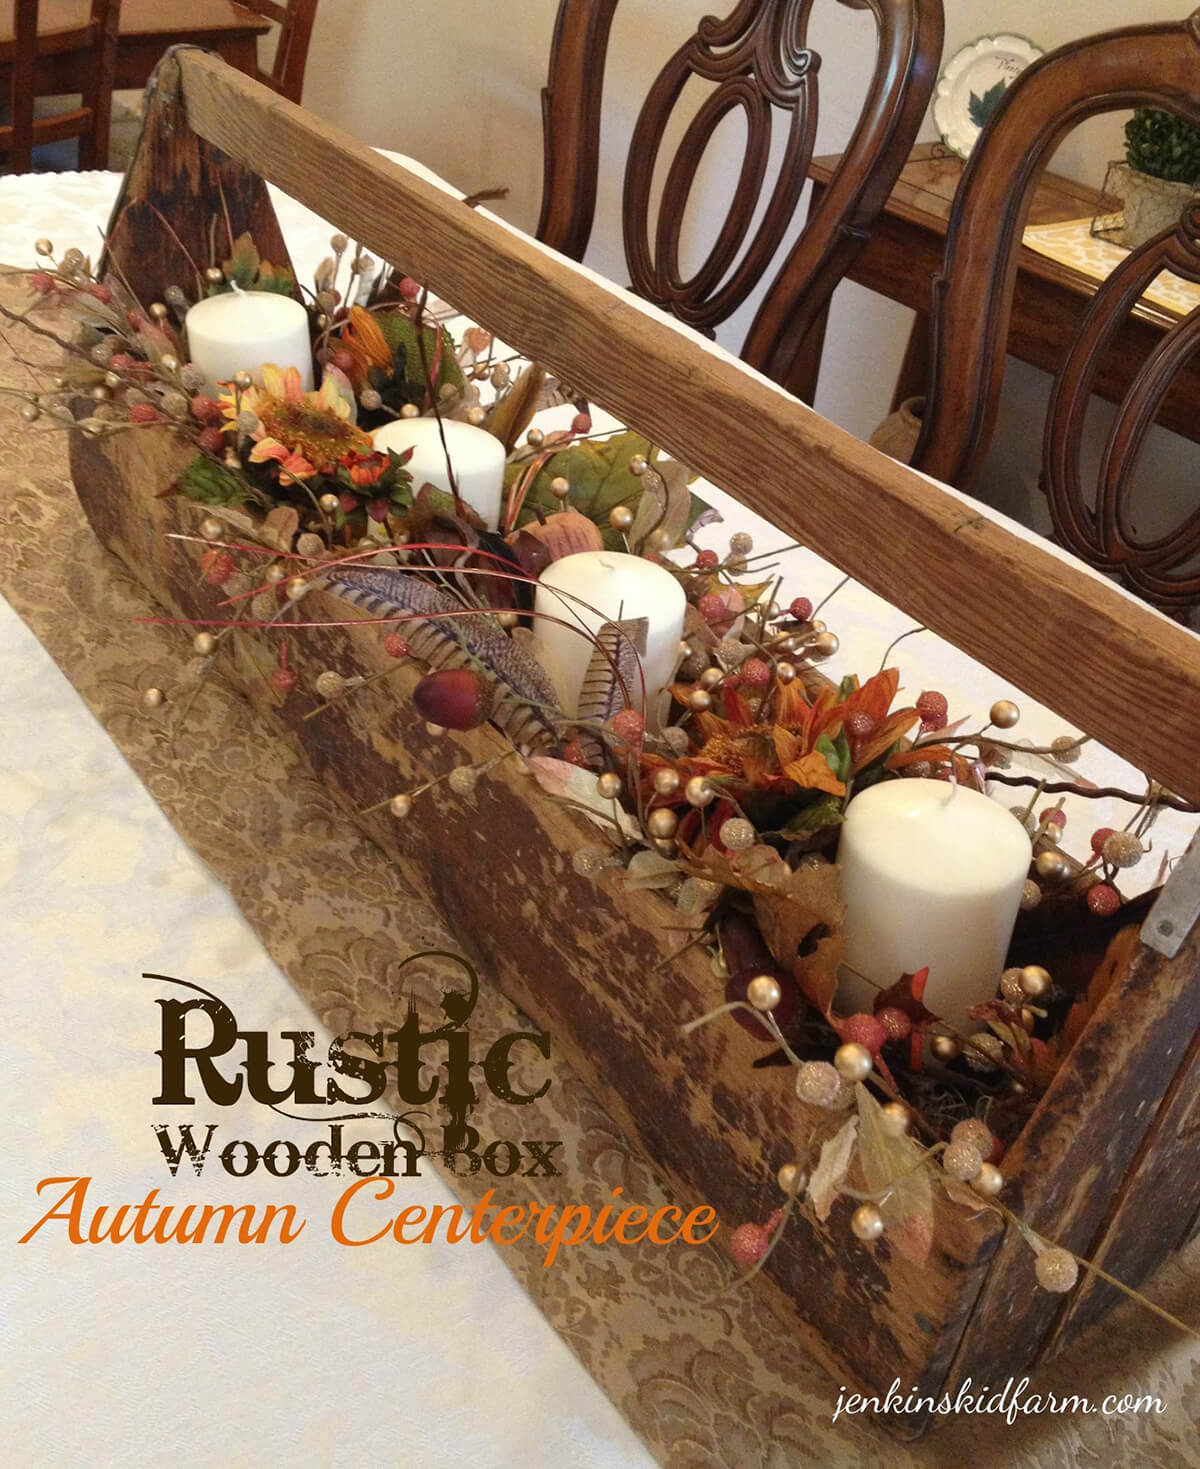 Lively Autumn Centerpiece with Leaves and Berries